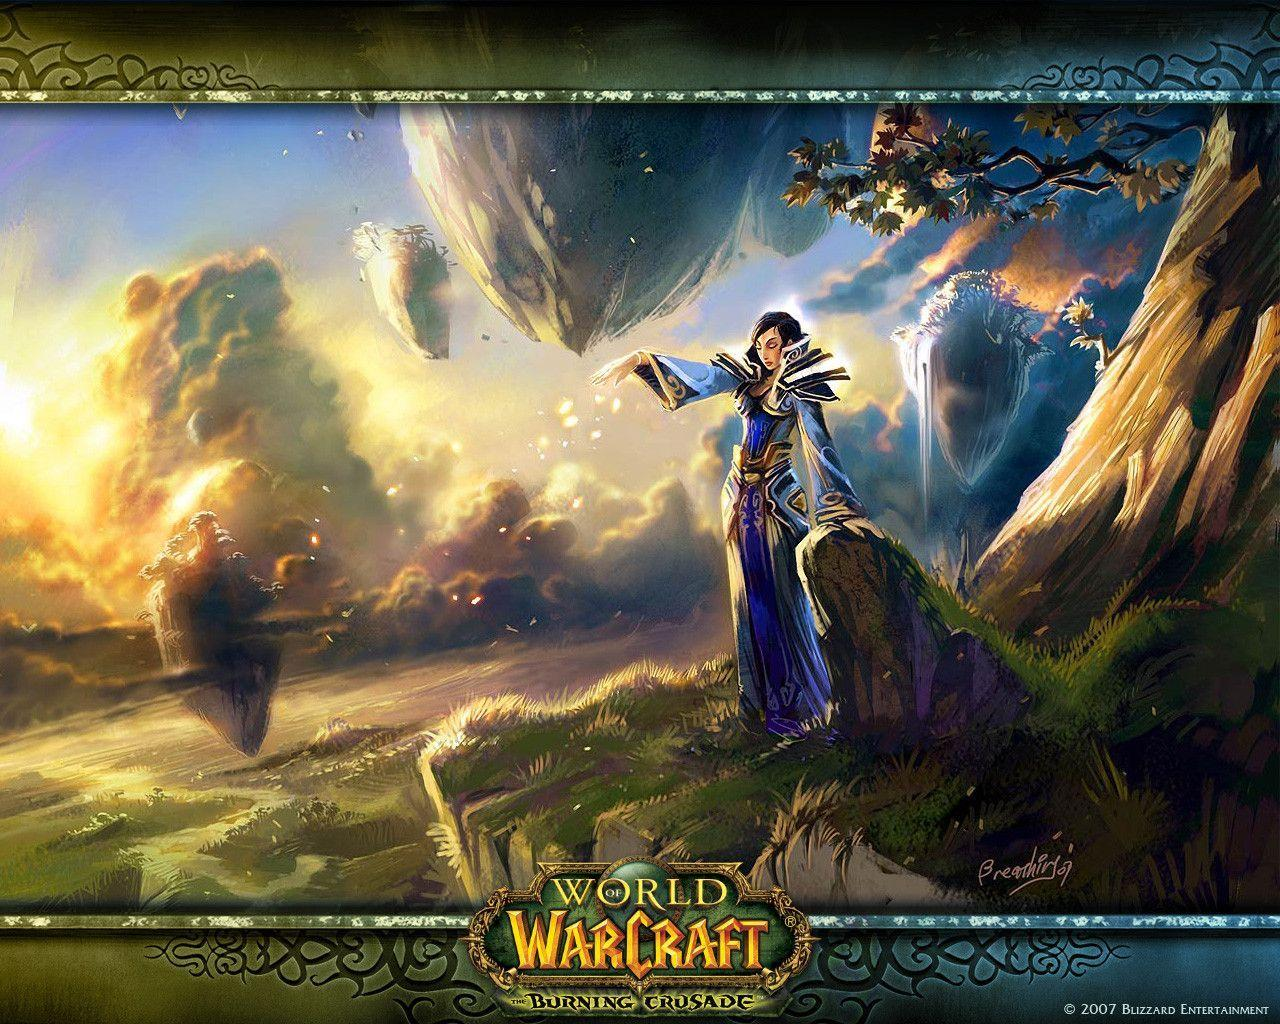 World Of Warcraft Priest Wallpapers - Wallpaper Cave